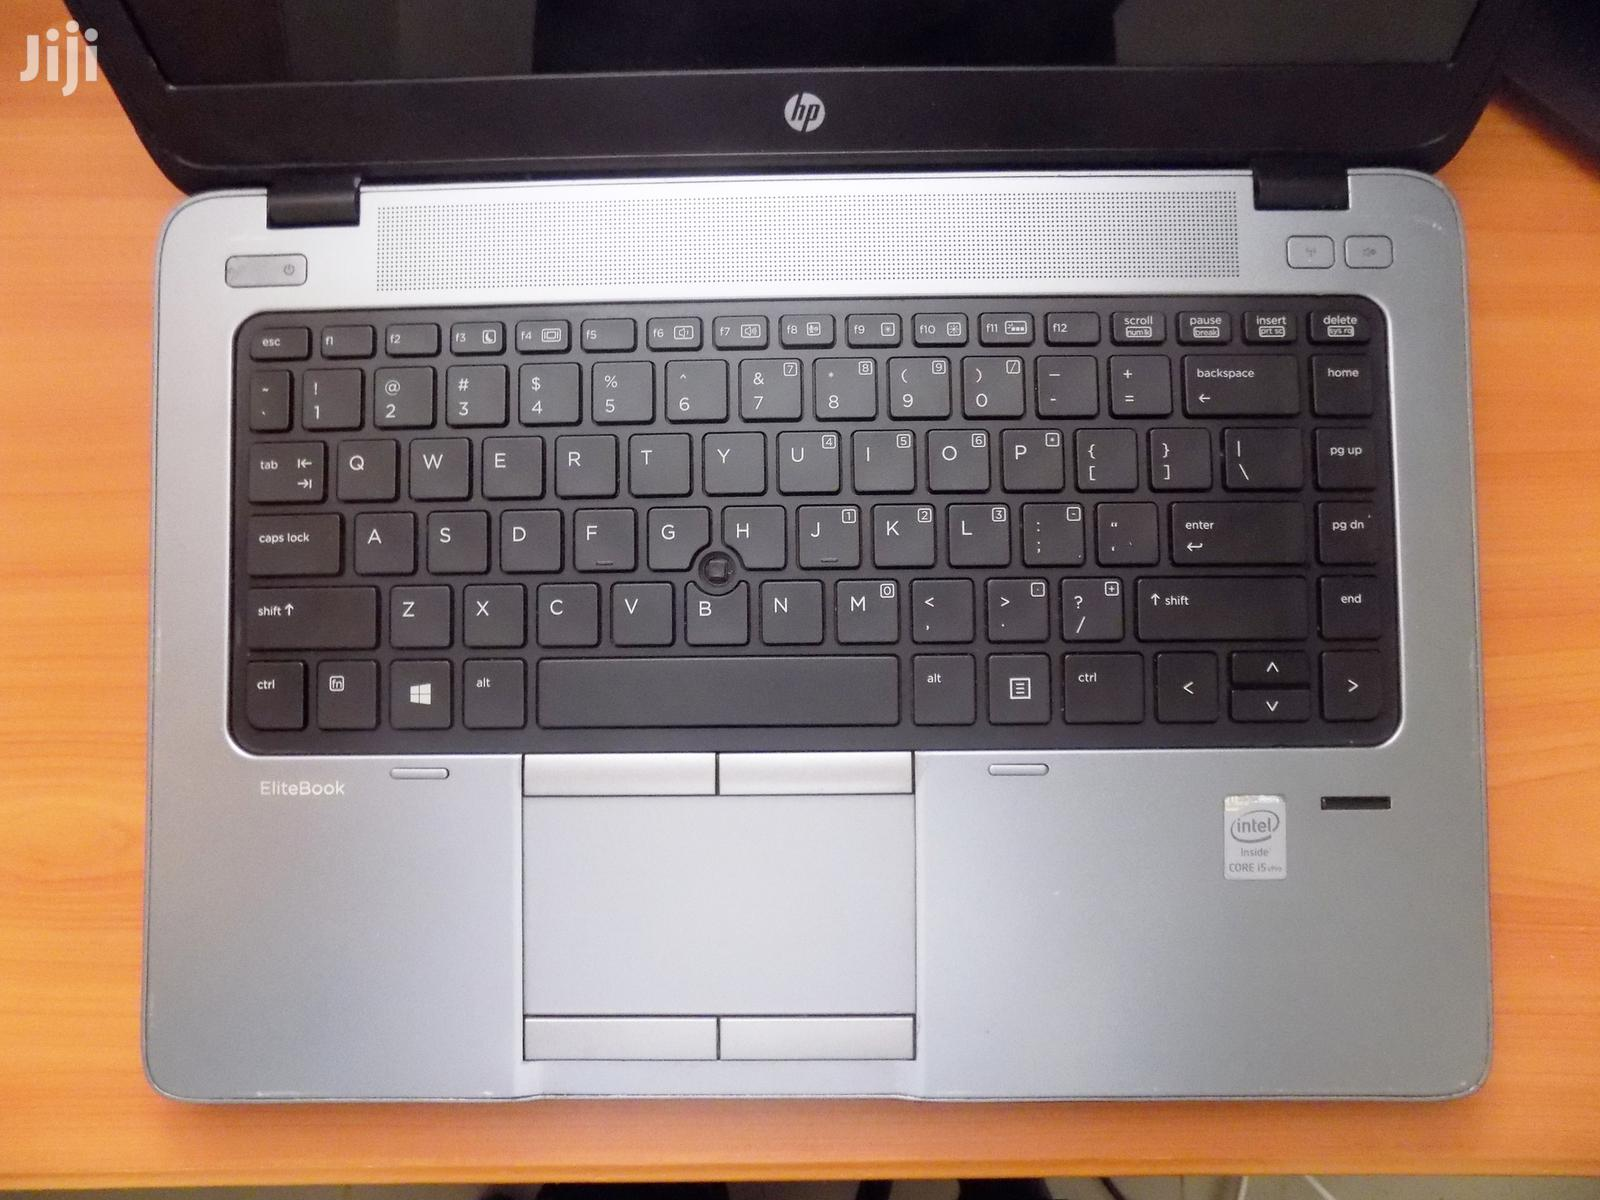 Laptop HP EliteBook 840 G1 4GB Intel Core I5 HDD 320GB | Laptops & Computers for sale in Kampala, Central Region, Uganda